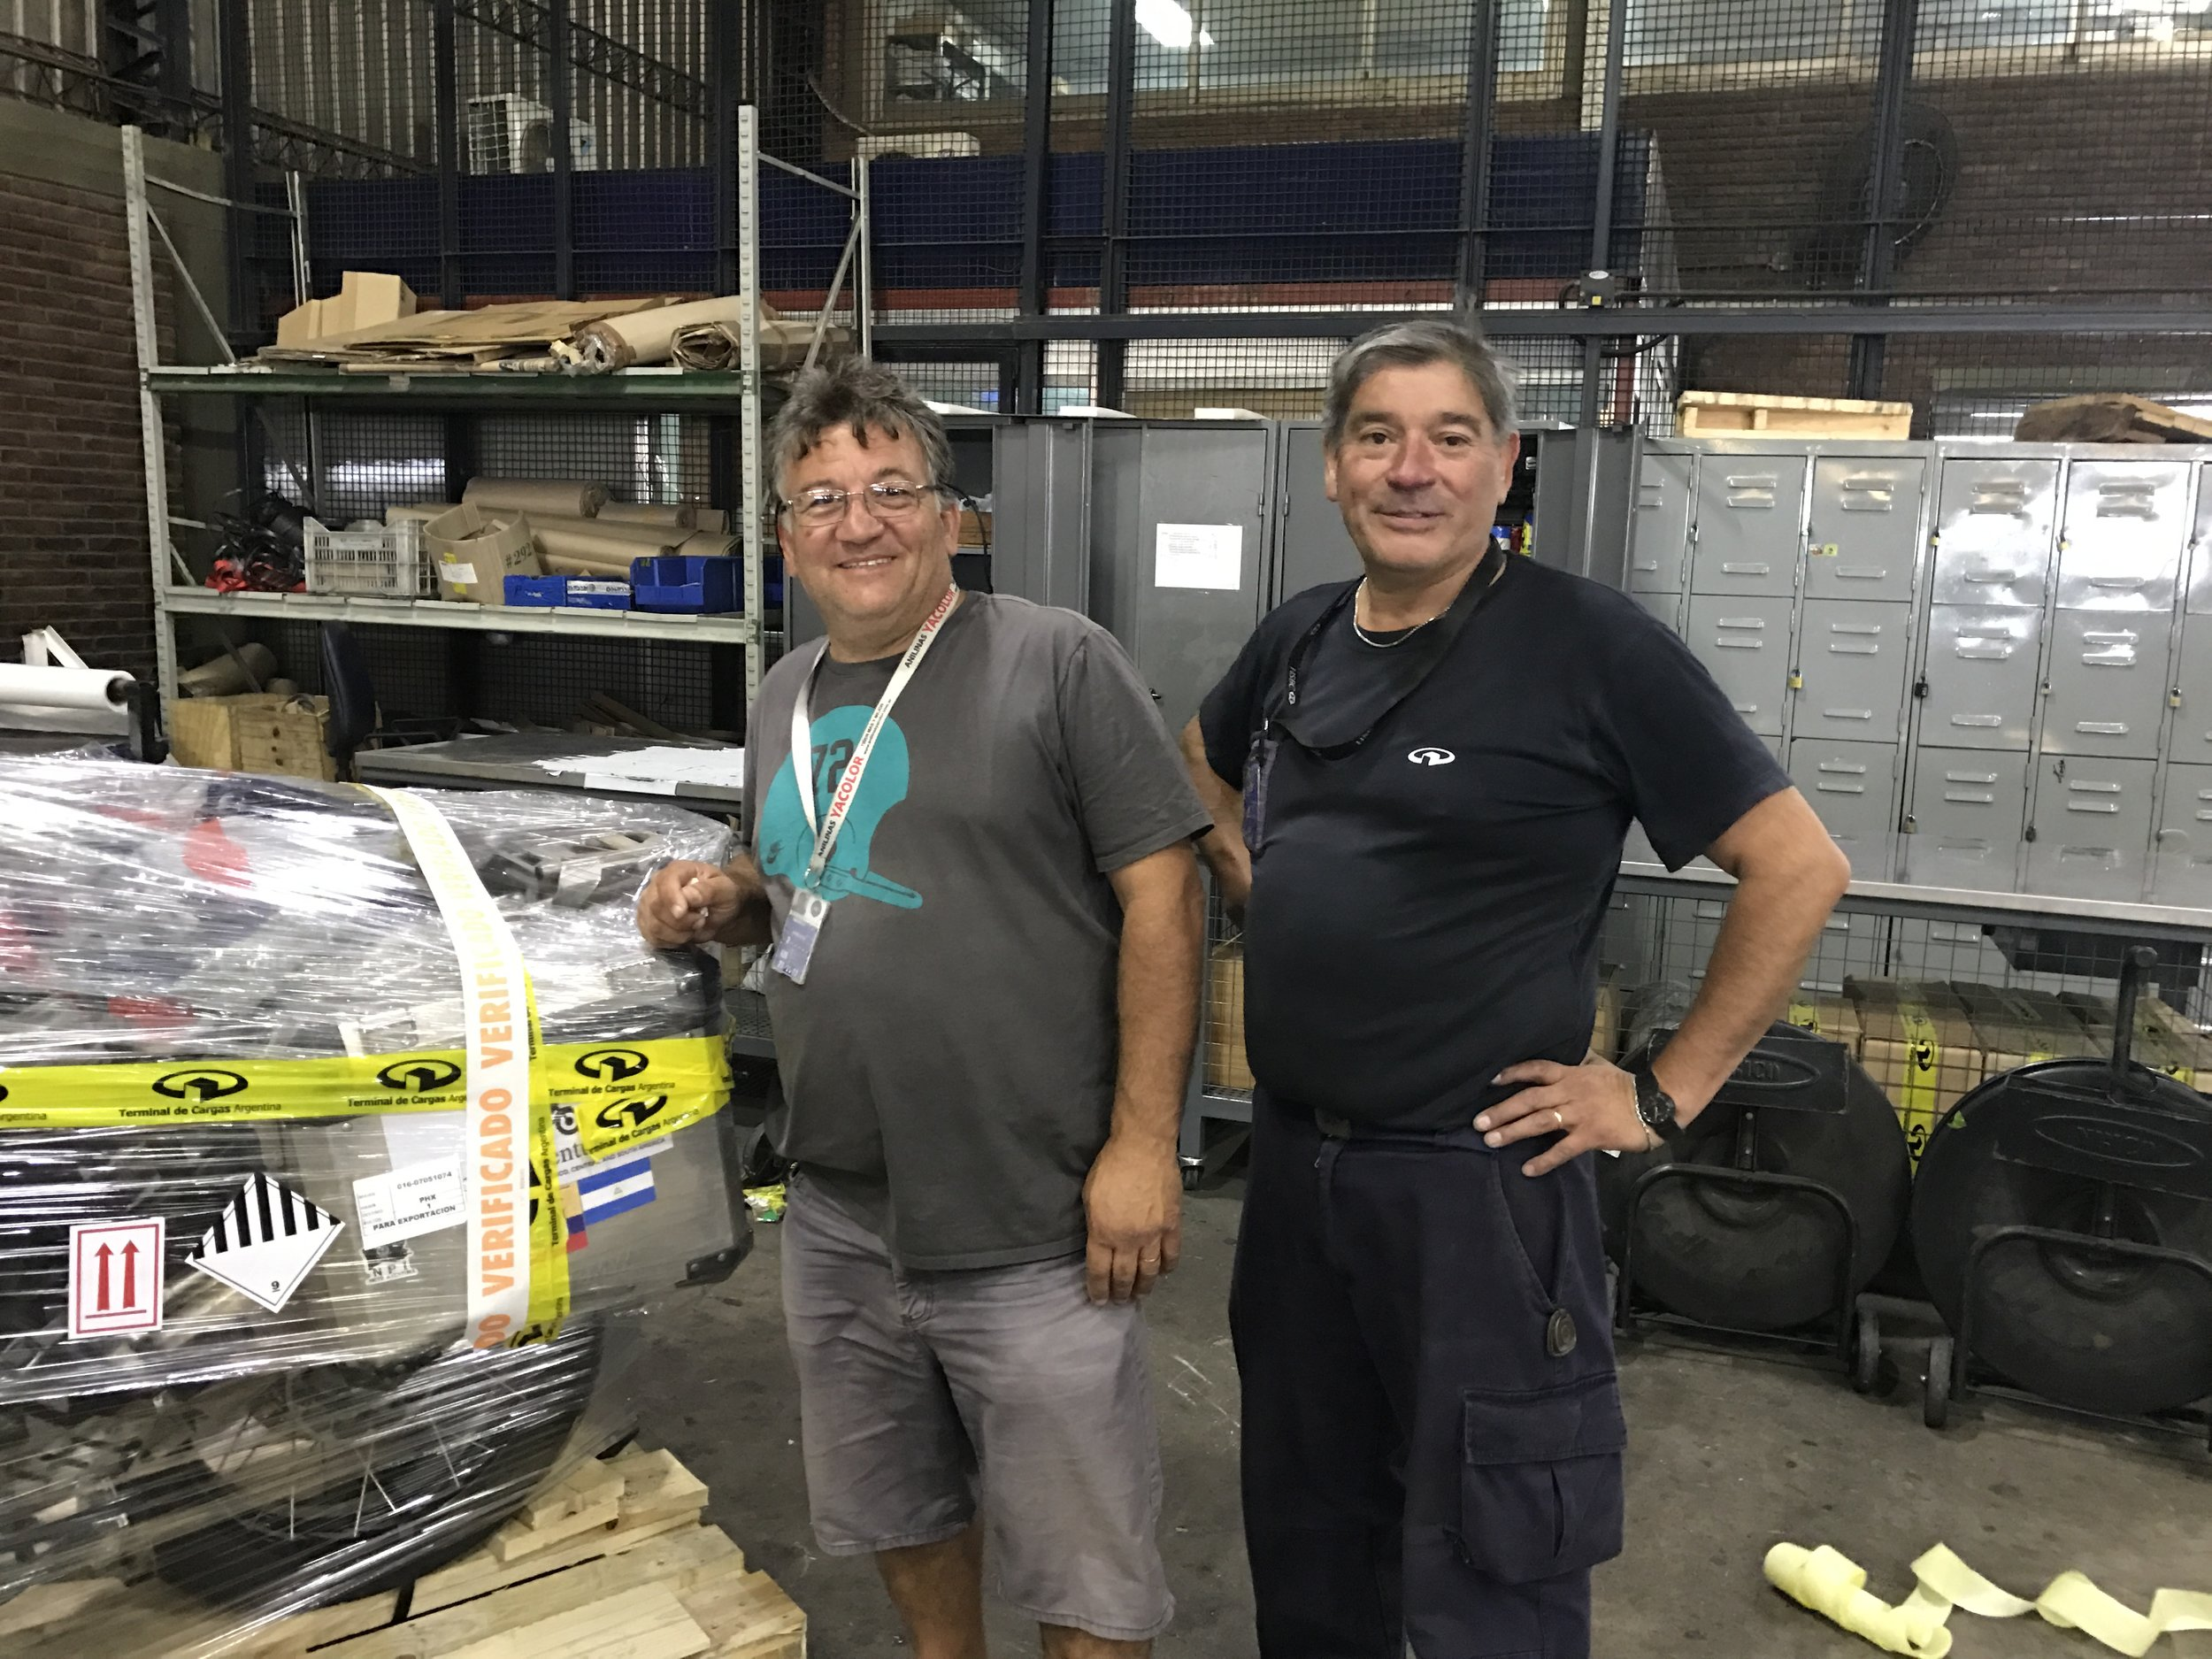 Franco and the gentleman who packed my bike for shipment.